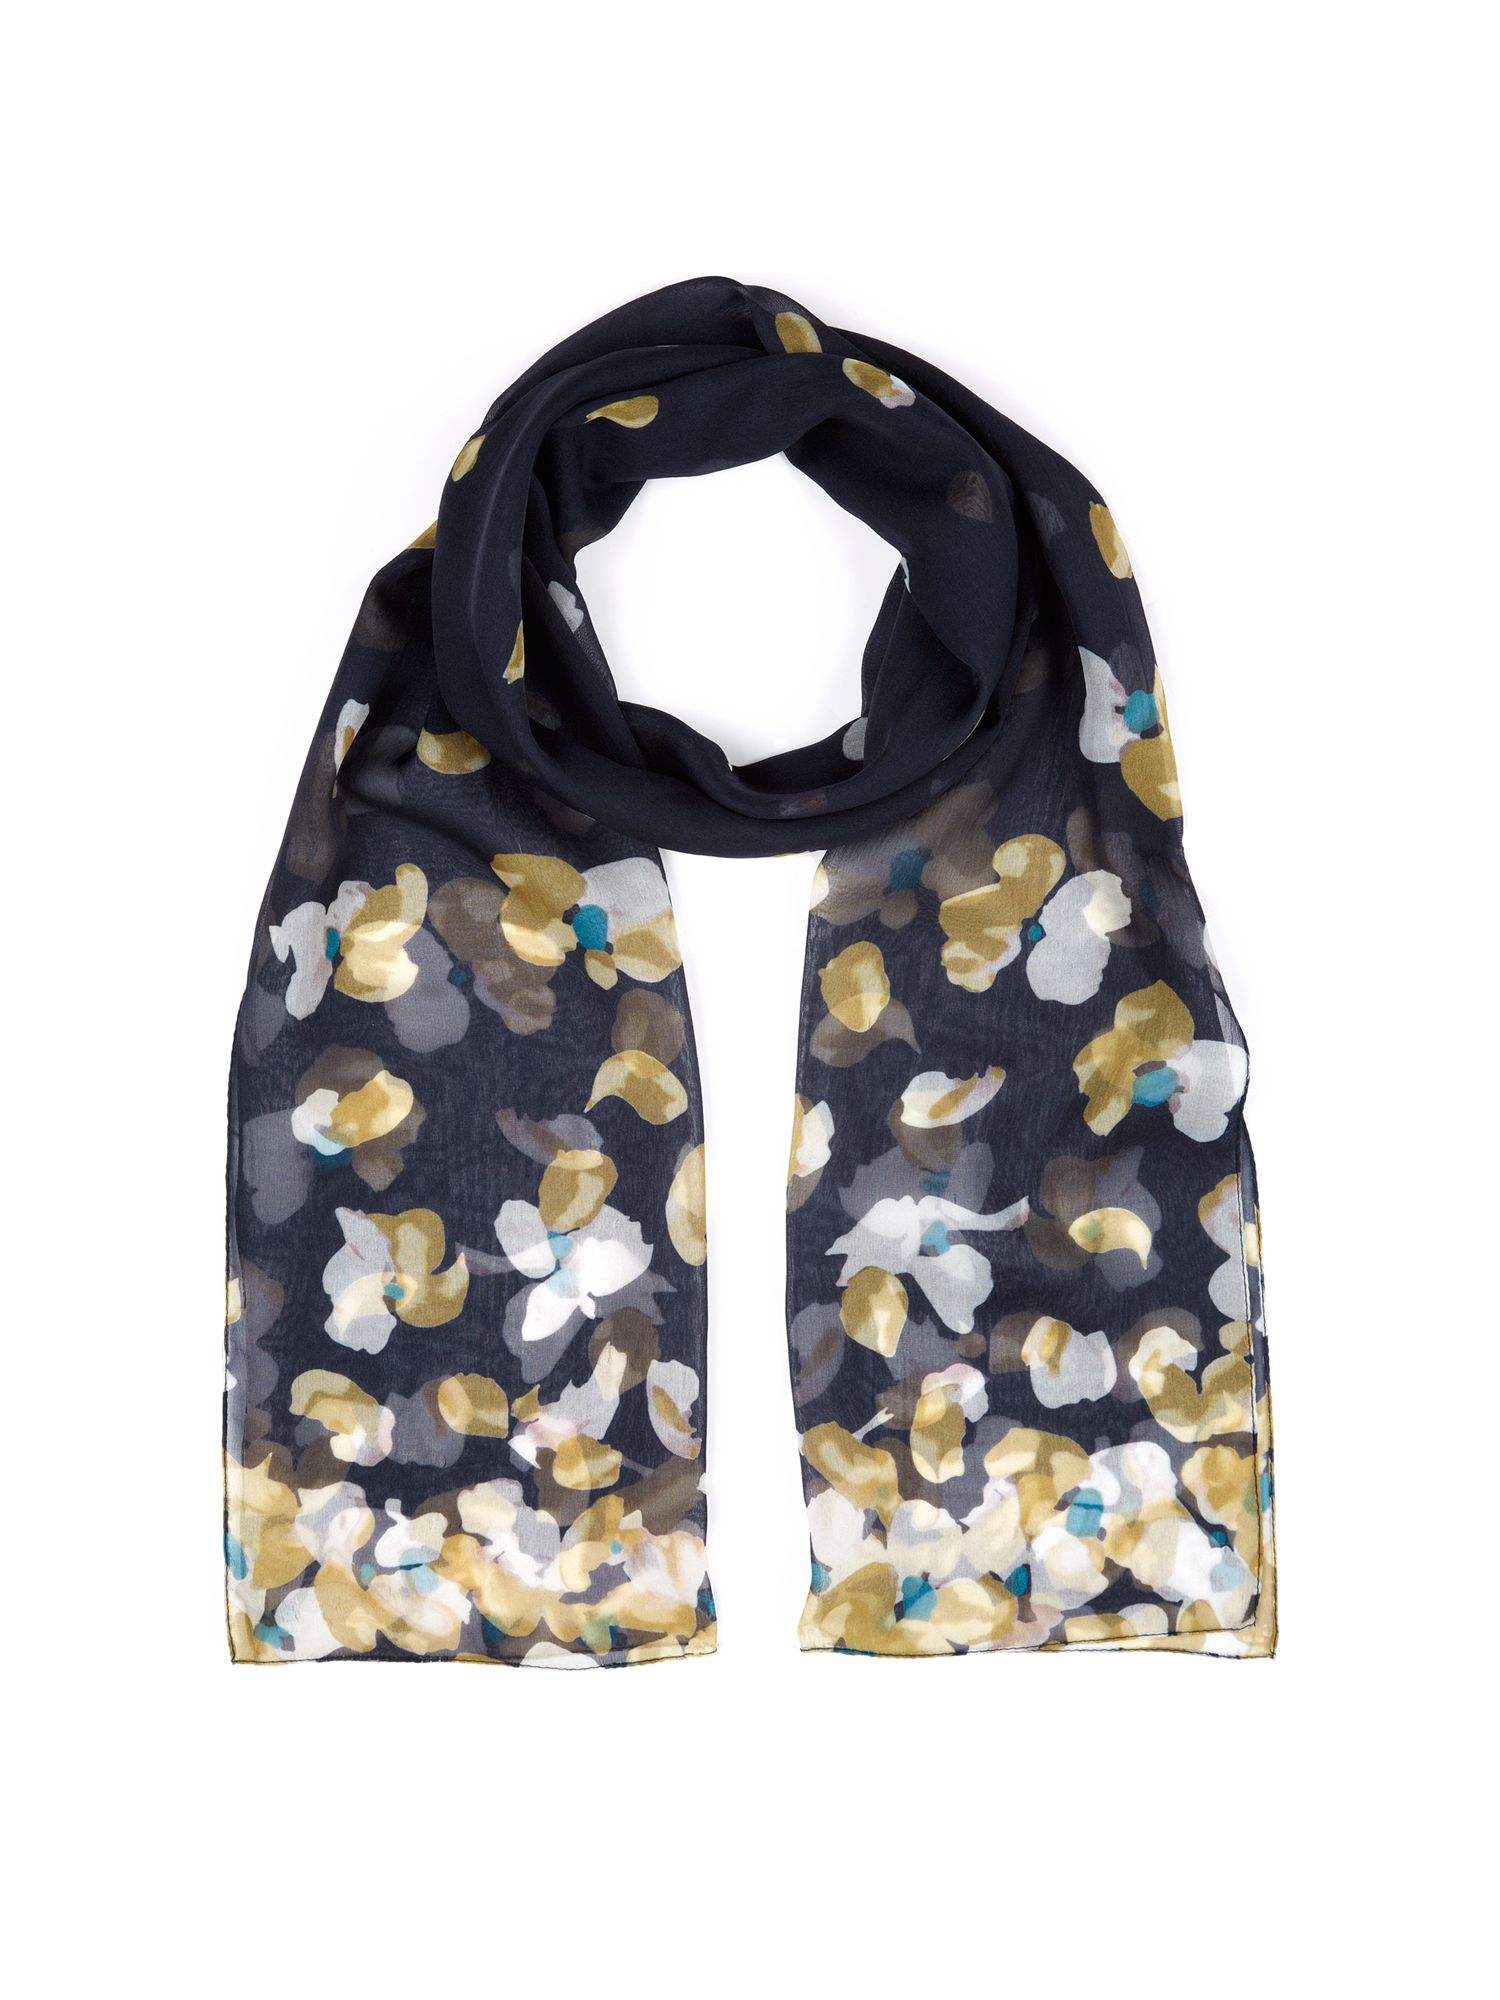 Mayfair print scarf